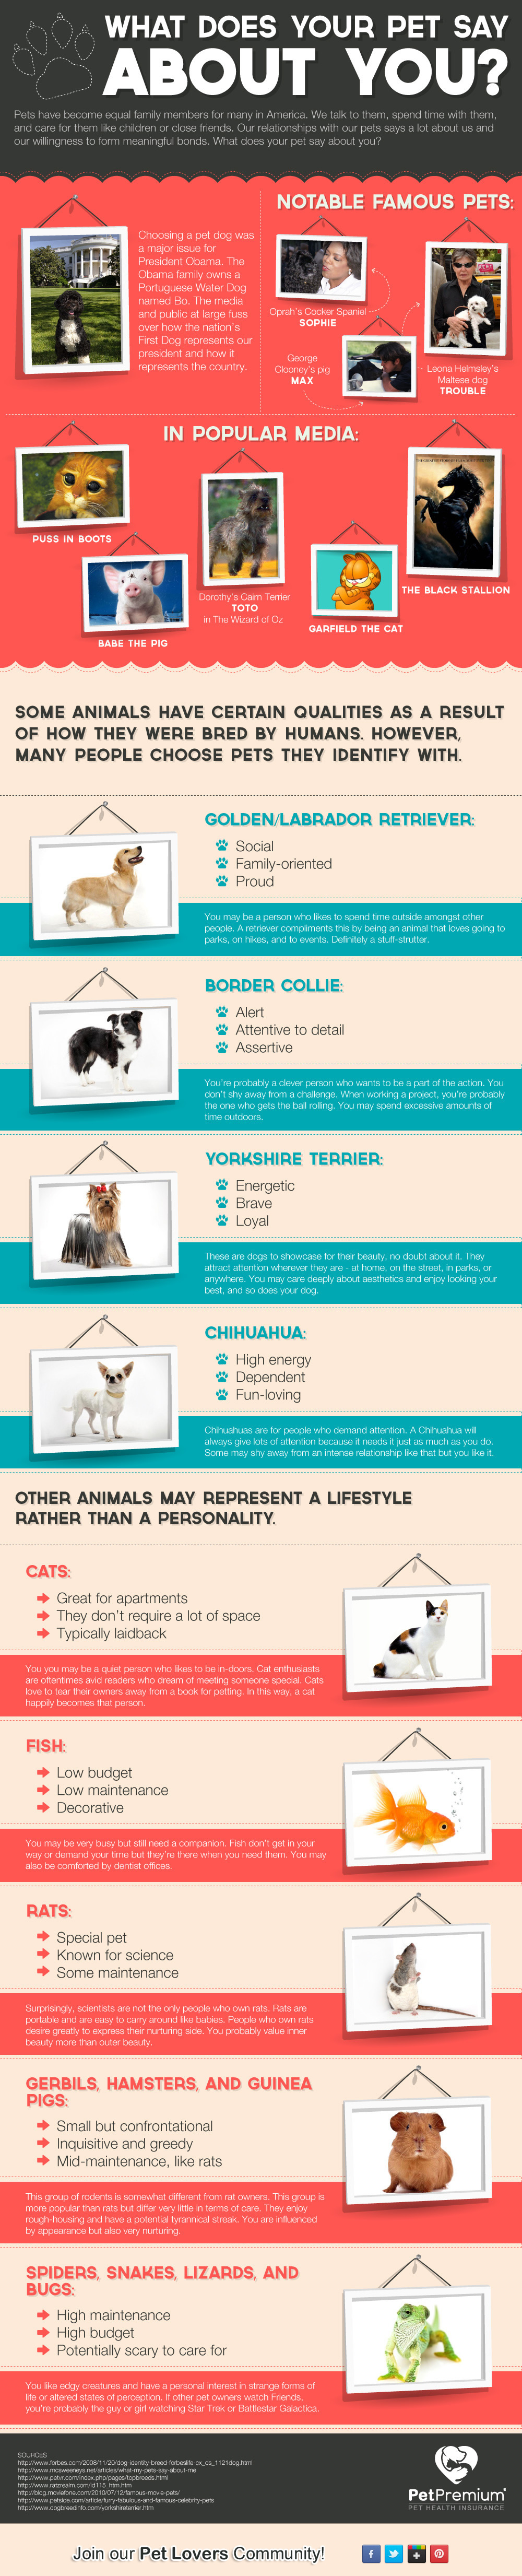 What Does Your Pet Say About You?